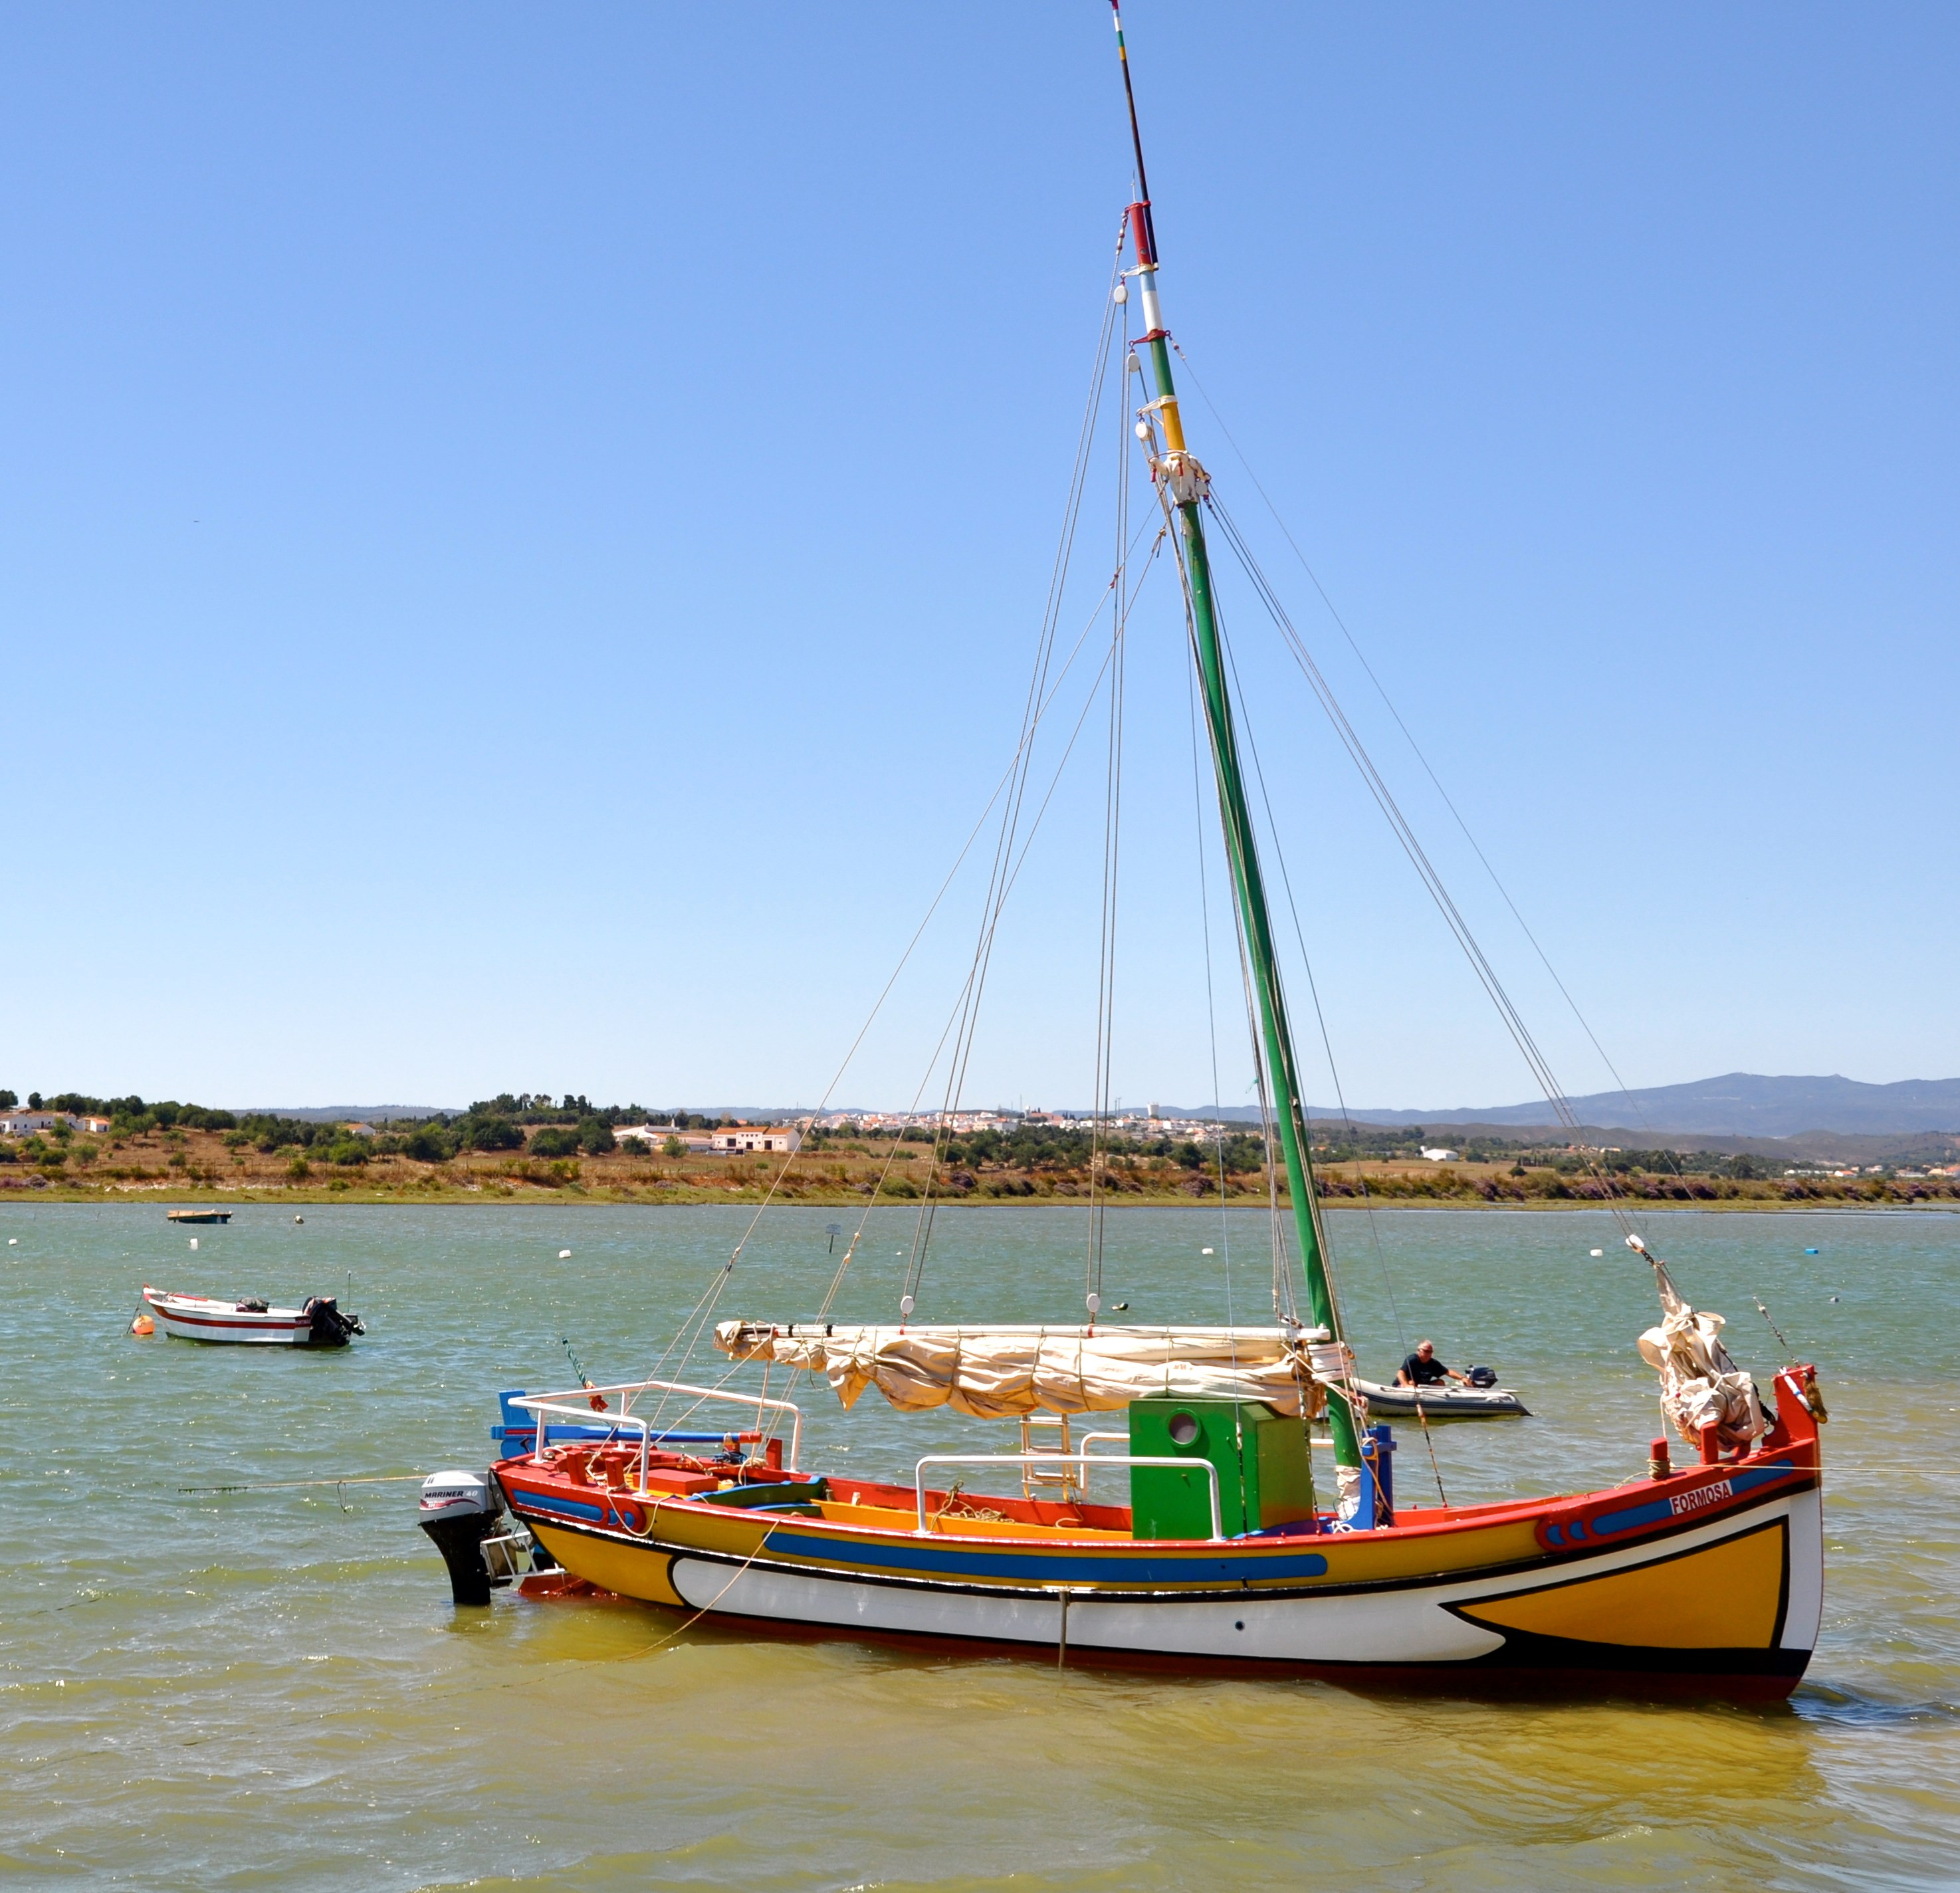 'Ria de Alvor' © Joao Alves | CC License